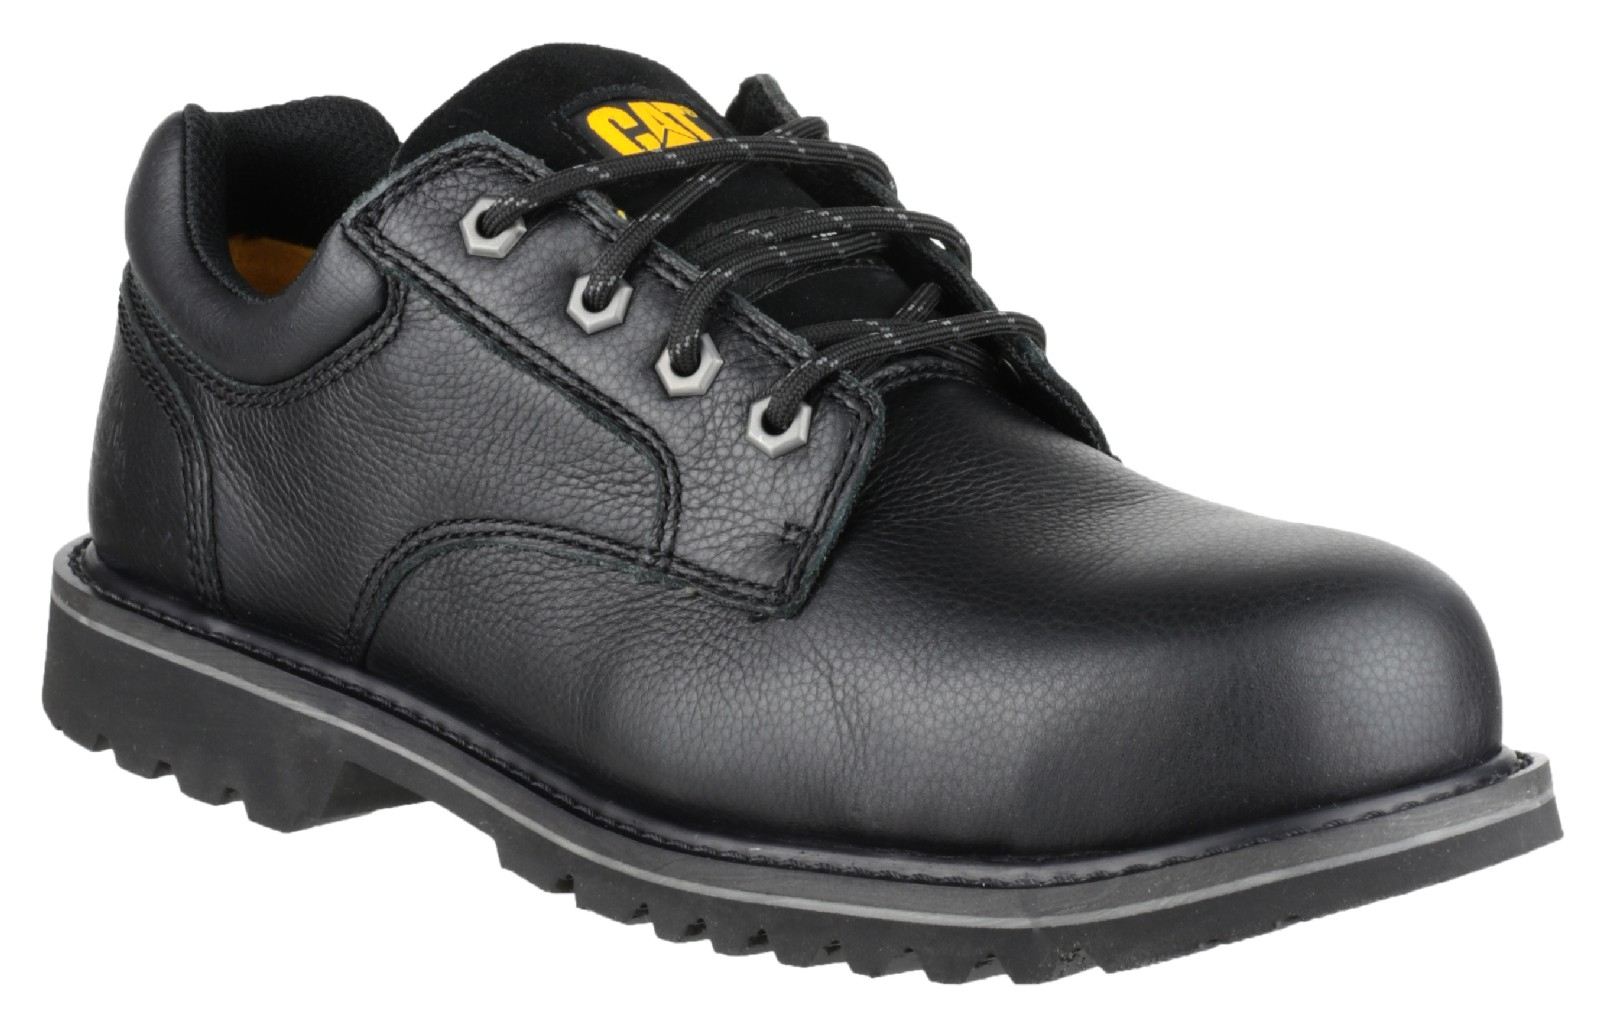 Caterpillar Electric Lo Safety Shoes Safety Boots R Us